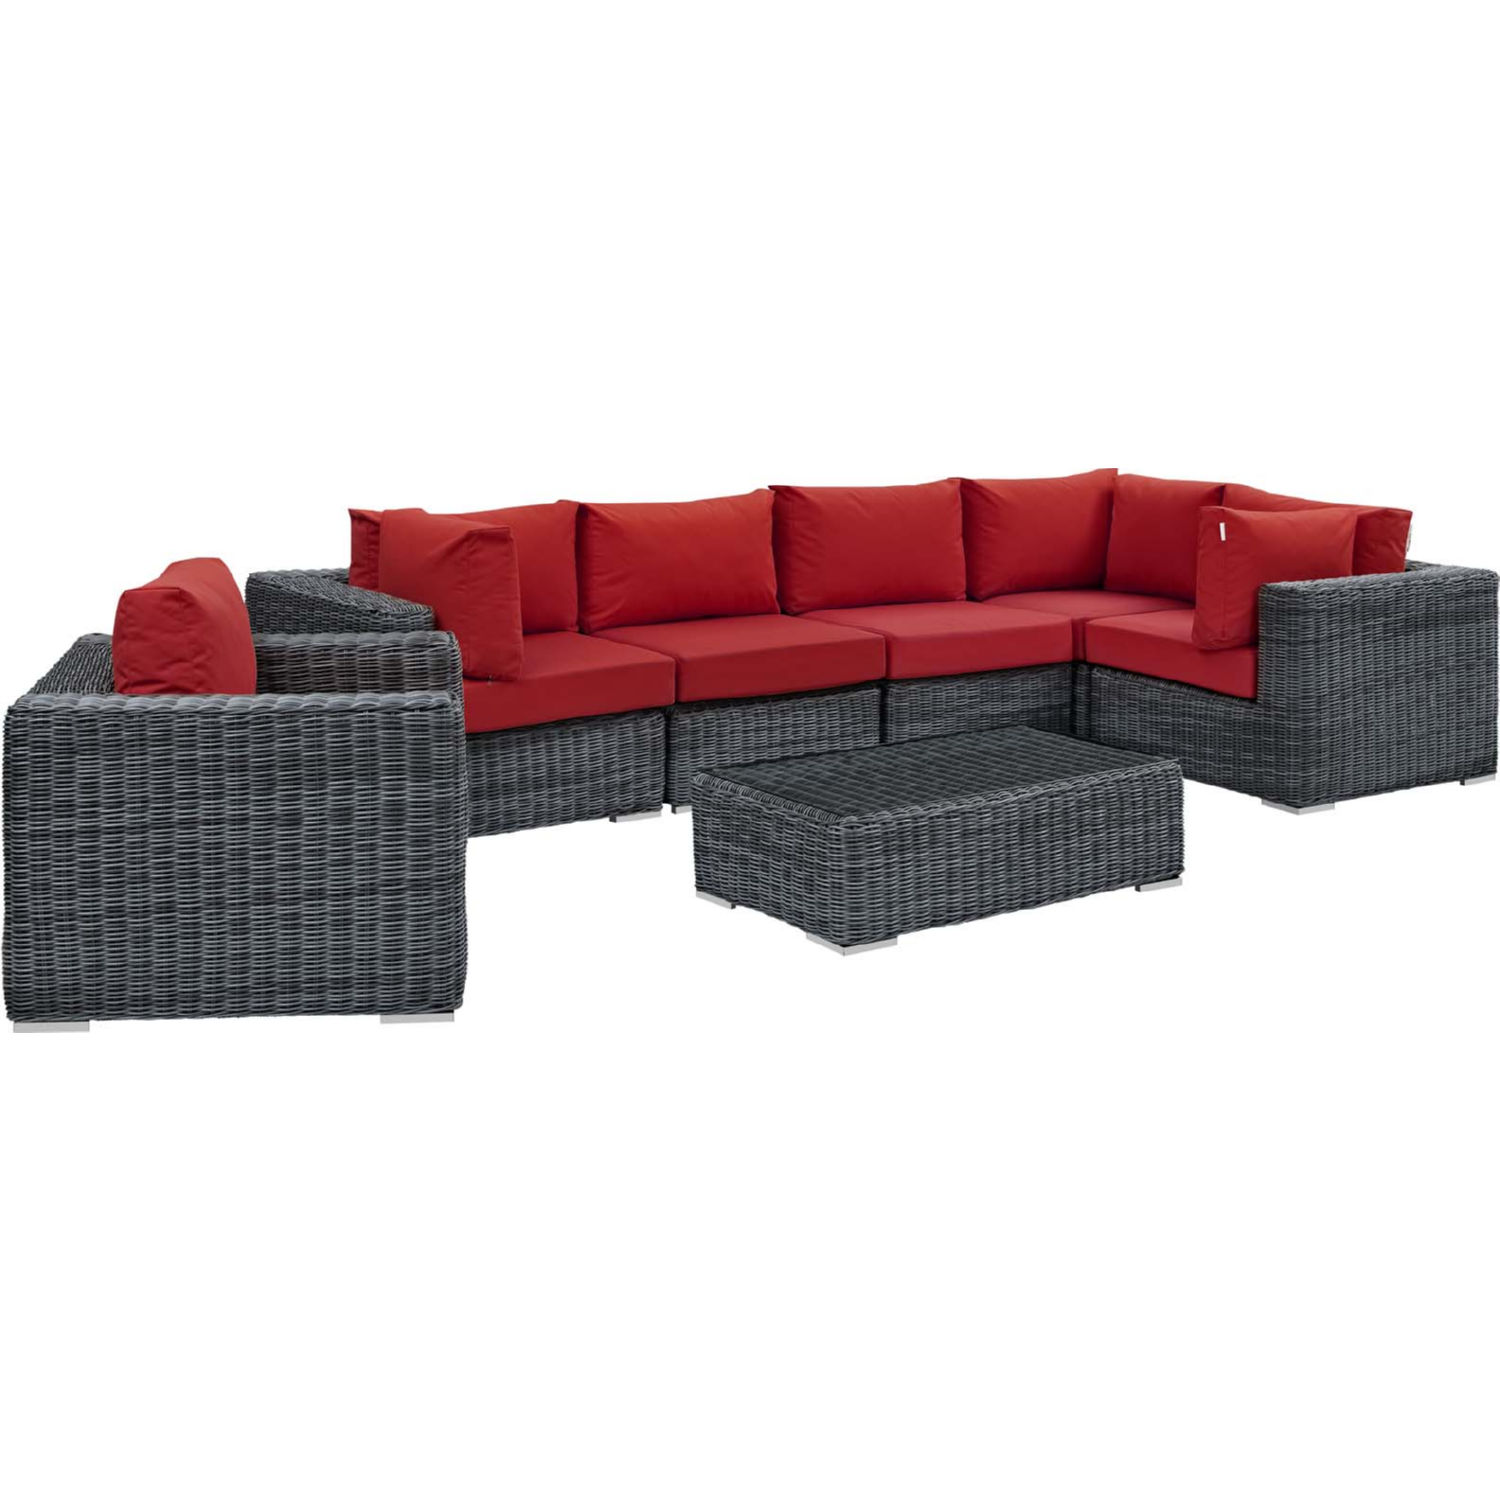 Super Summon 7 Piece Outdoor Sectional Sofa Set In Pe Rattan Red Sunbrella By Modway Cjindustries Chair Design For Home Cjindustriesco